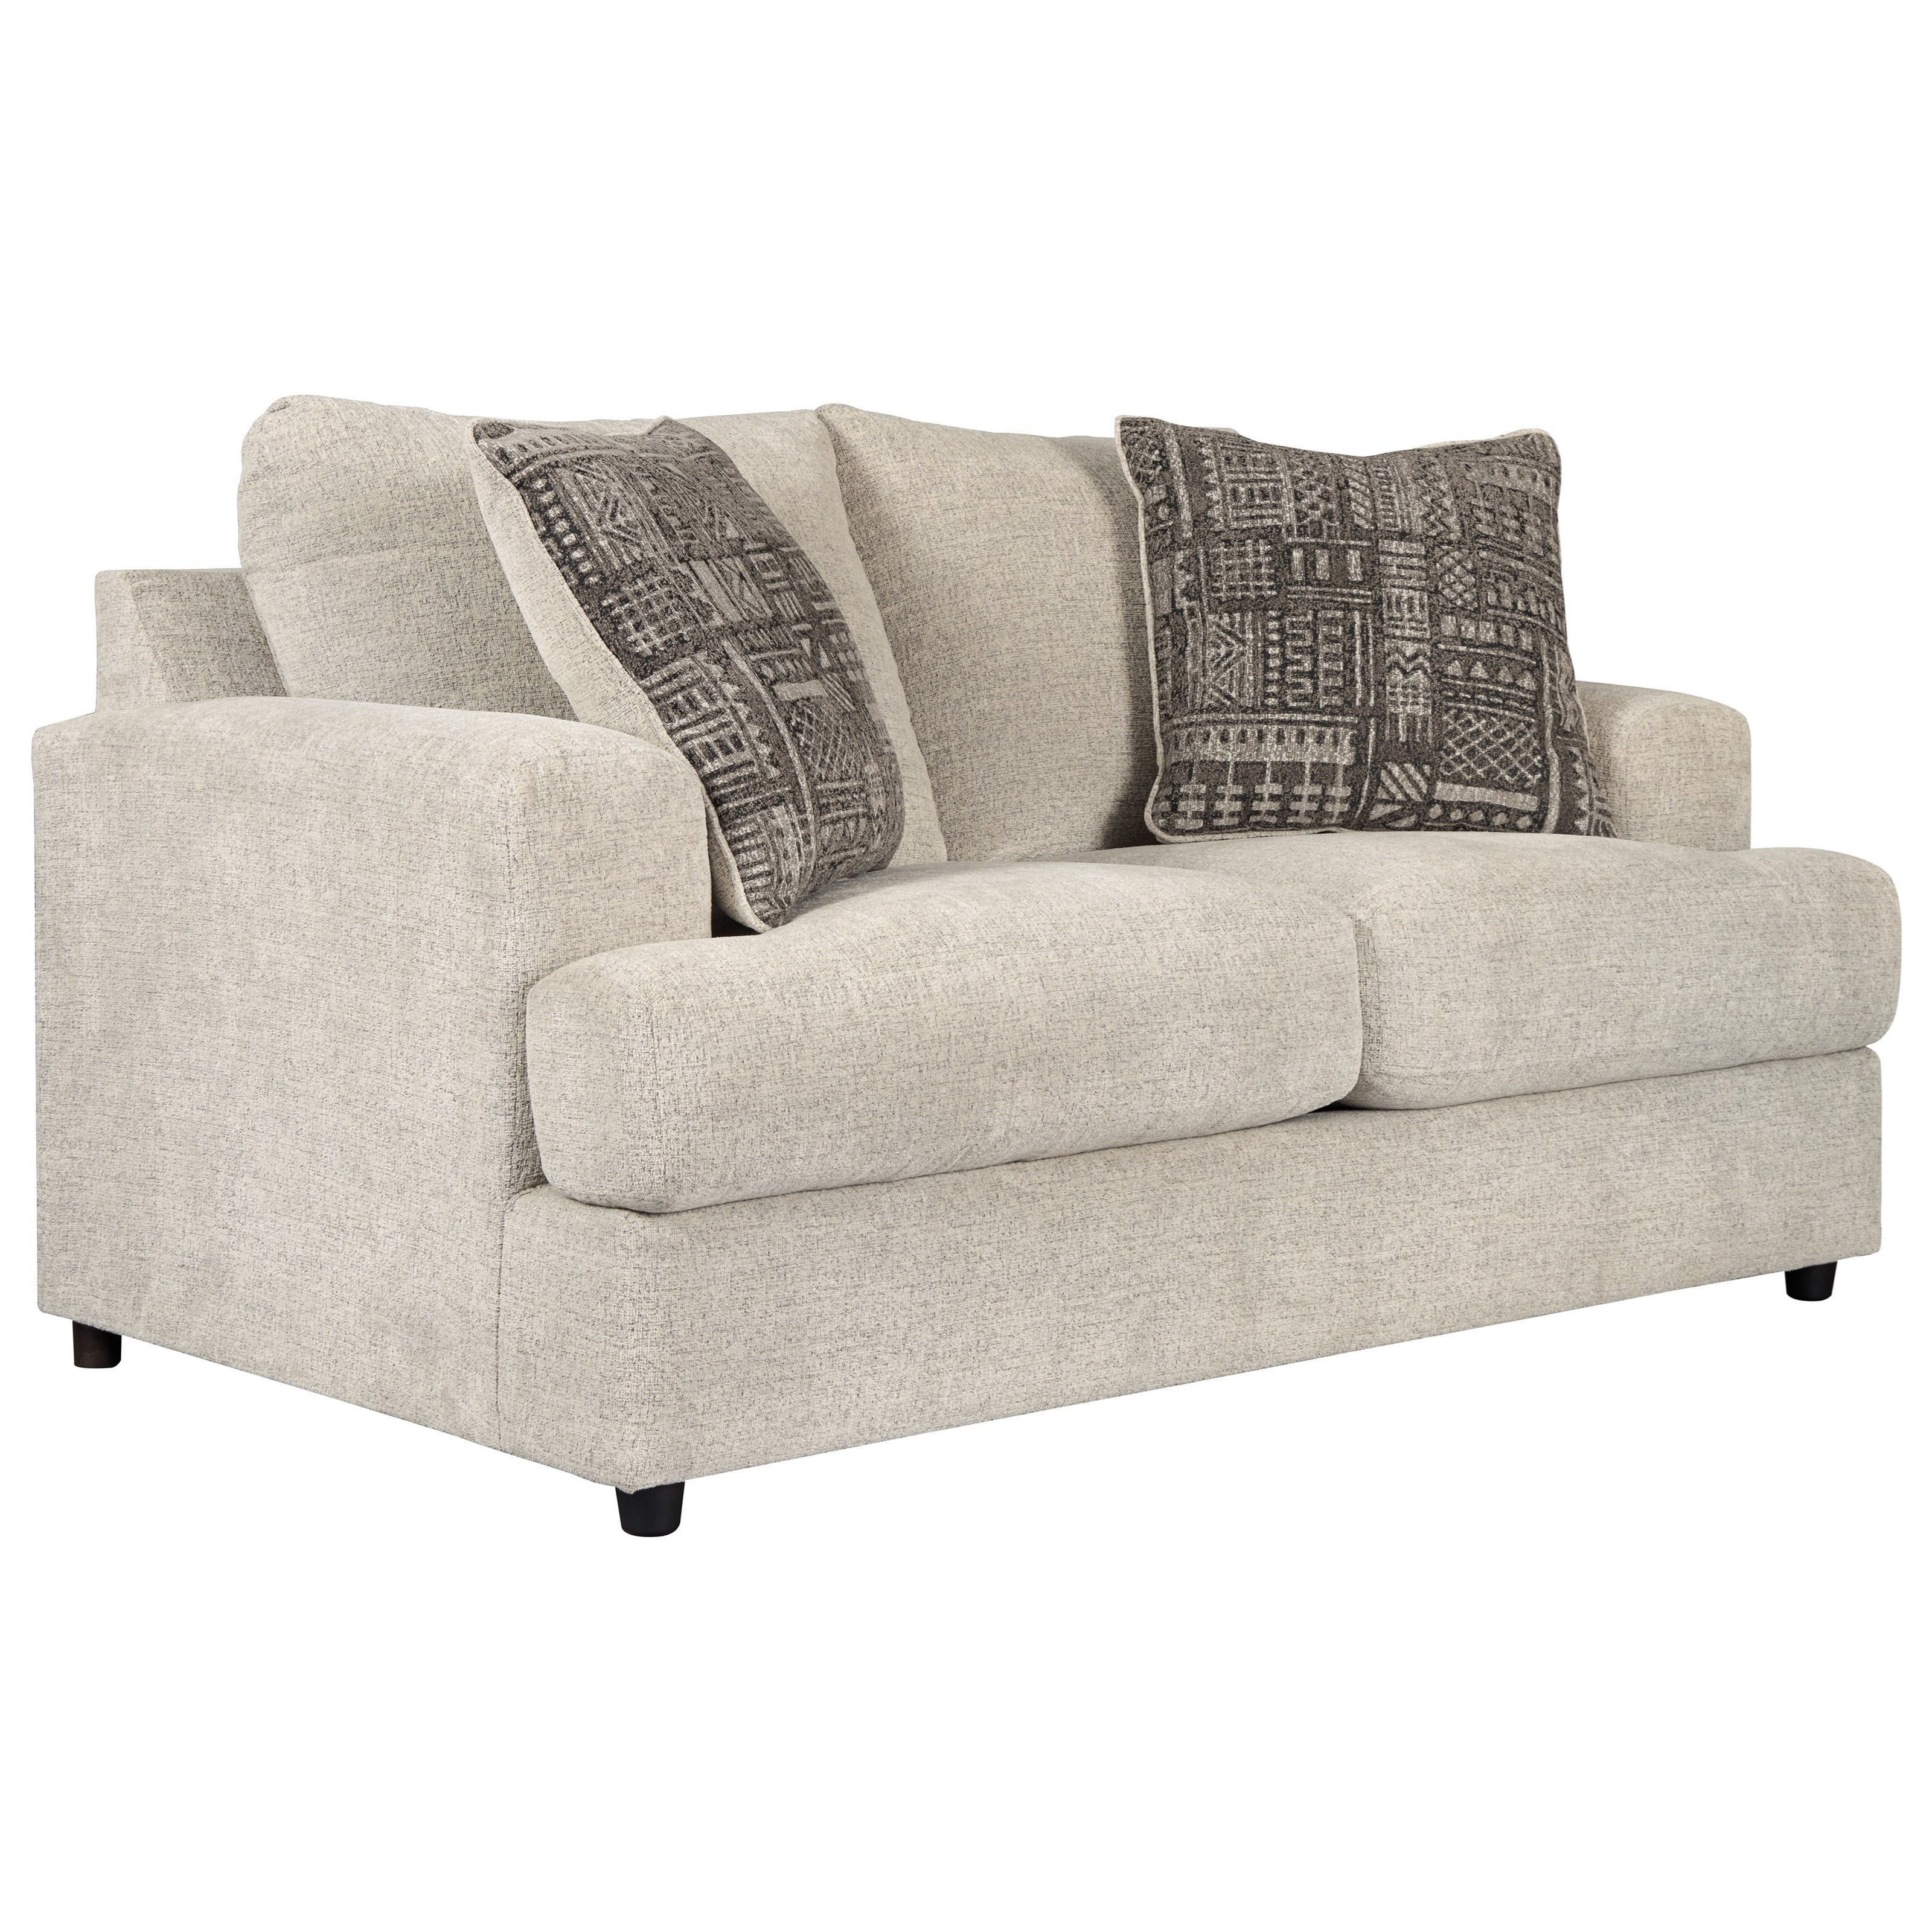 Soletren Loveseat by Signature at Walker's Furniture